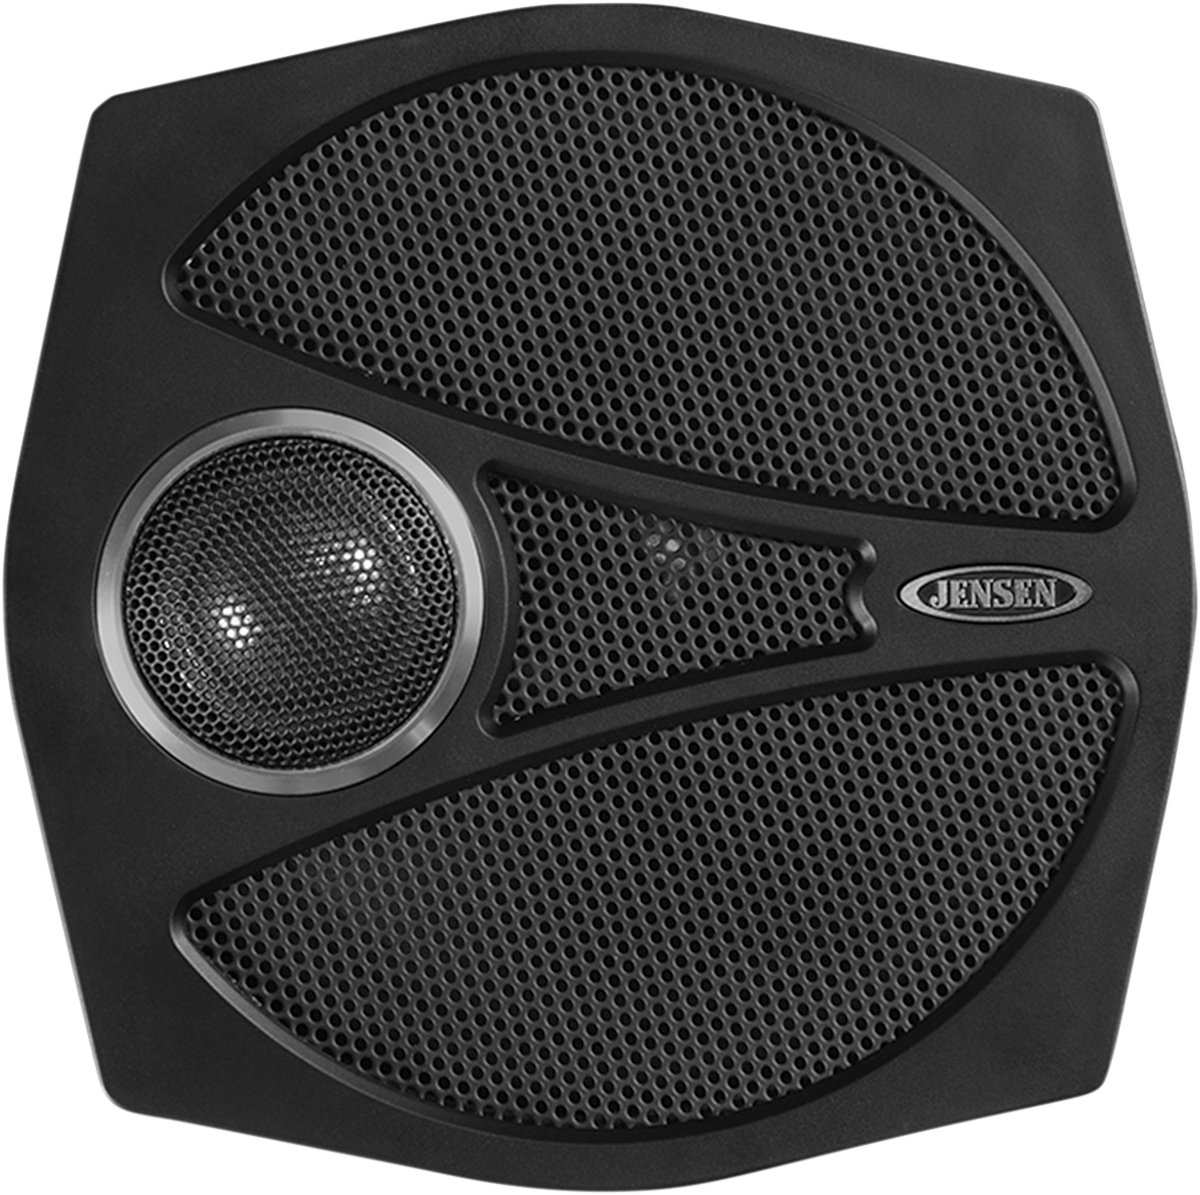 JENSEN HDX525 51/4'' High Performance 2-Way Speaker